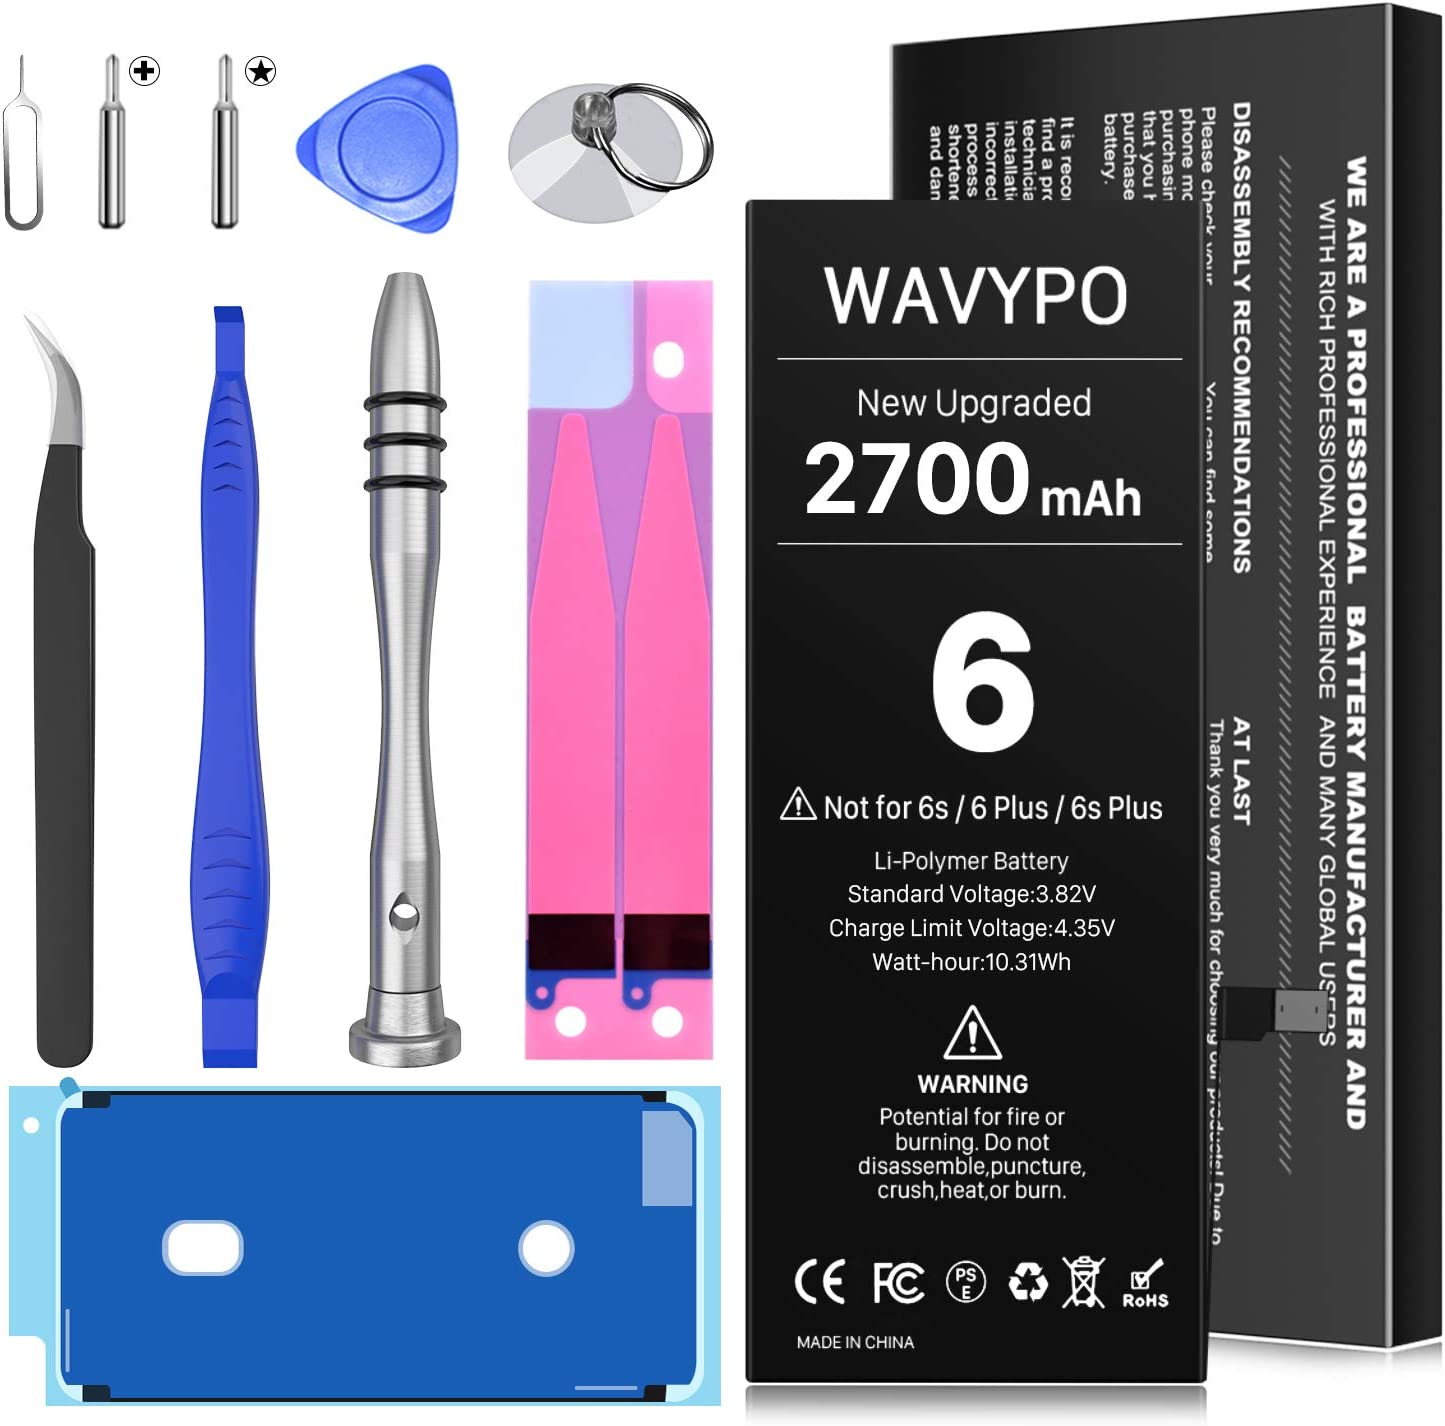 2700mAh Battery for iPhone 6, Upgraded Wavypo 2021 New Version High Capacity 0 Cycle Replacement Battery for iPhone 6 A1586 A1589 A1549 with Full Replacement Tool Kit Instruction